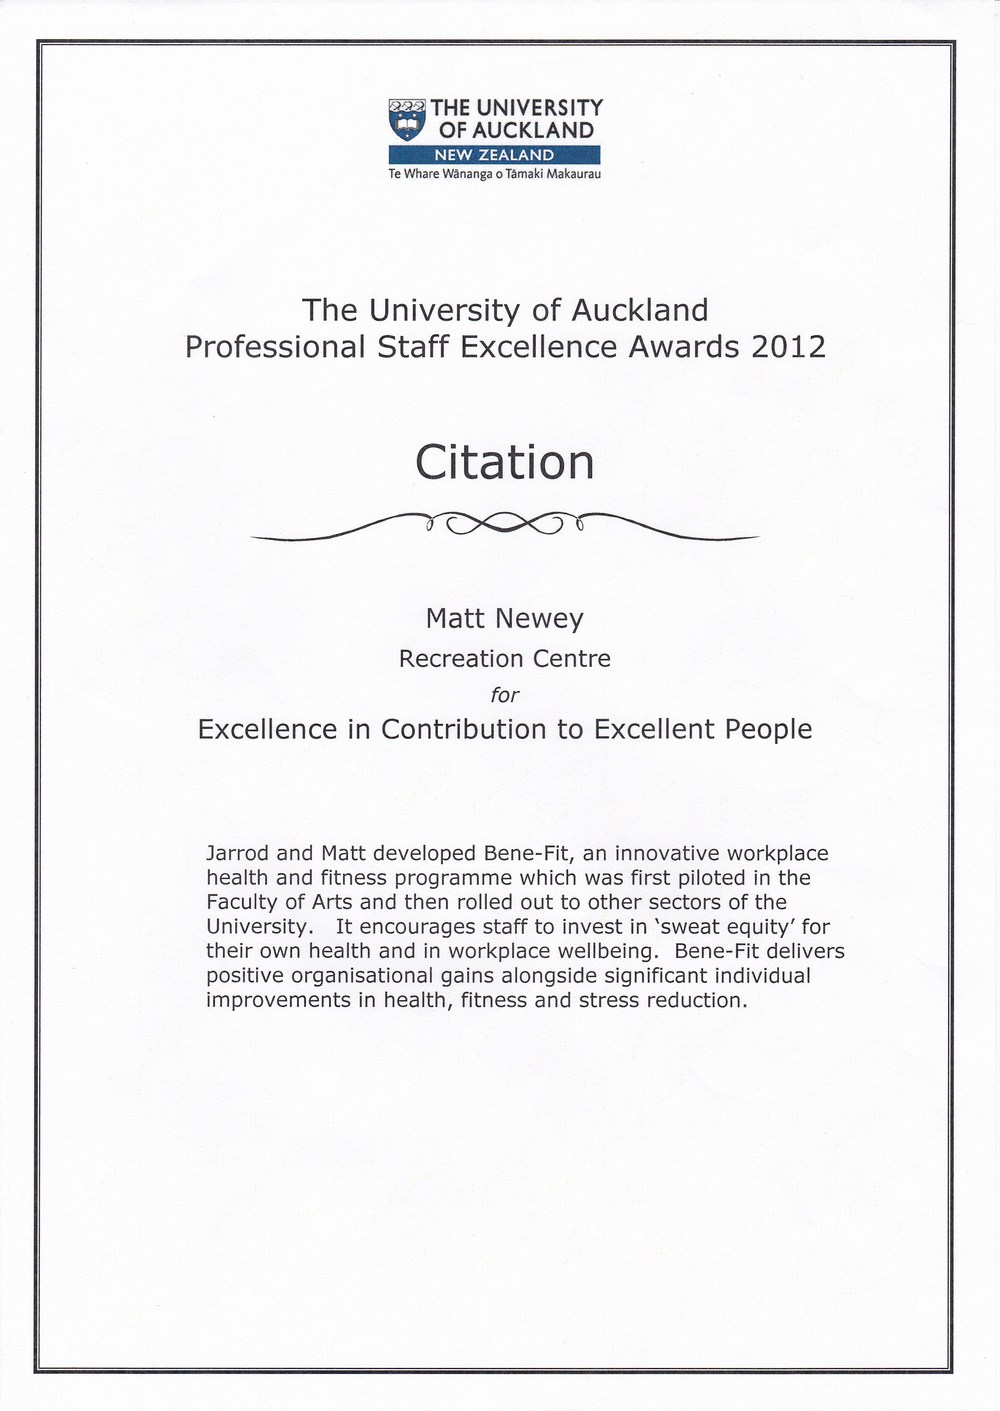 Excellence award citation.jpg